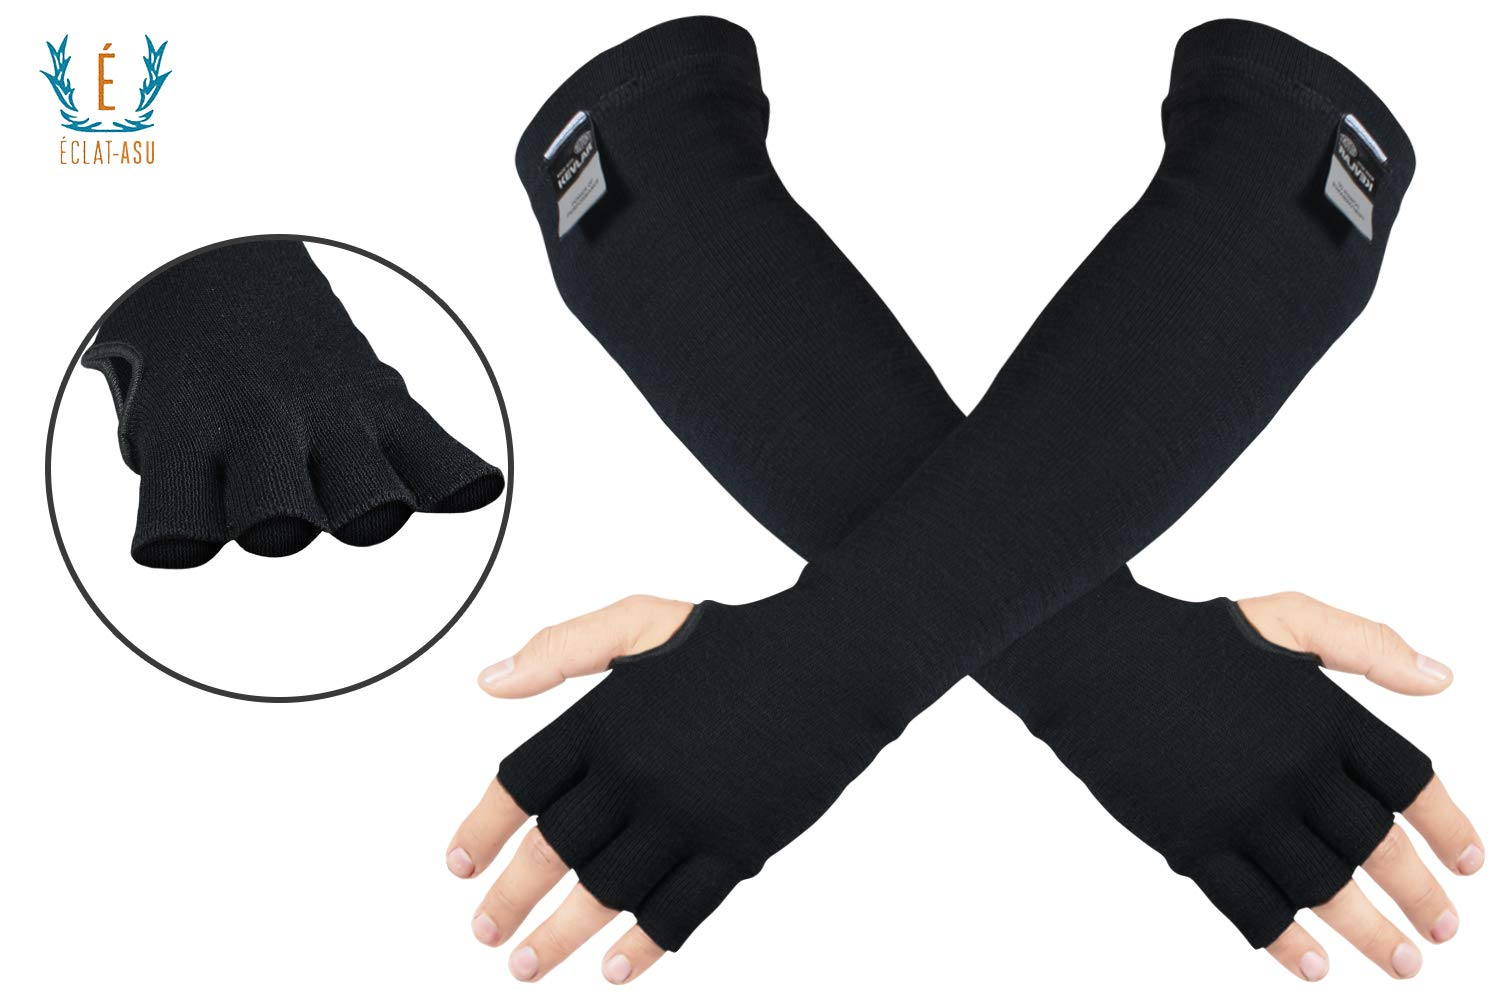 100% Kevlar Arm Sleeves- Cut, Scratch & Heat Resistant Arm Sleeve with Finger Opening & Thumb Holes- Arm Safety Sleeves- Long Arm Protectors- Flexible & Washable- 18 Inches, Black, 1 Pair